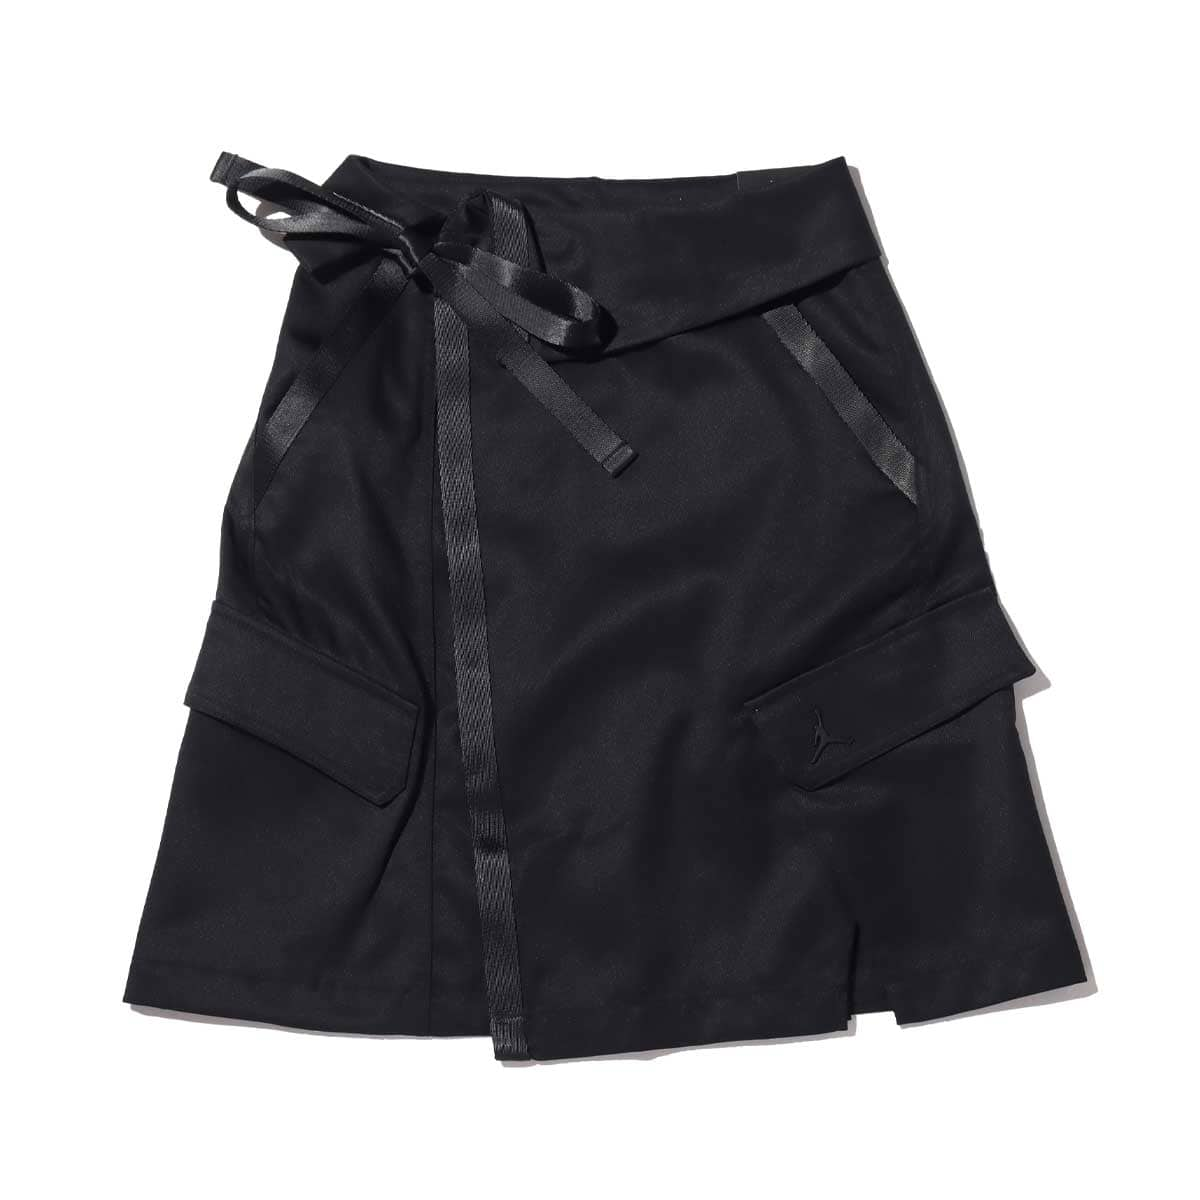 JORDAN BRAND AS W J UTILITY SKIRT FUTURE BLACK/BLACK/BLACK OXIDIZED 21SP-I_photo_large